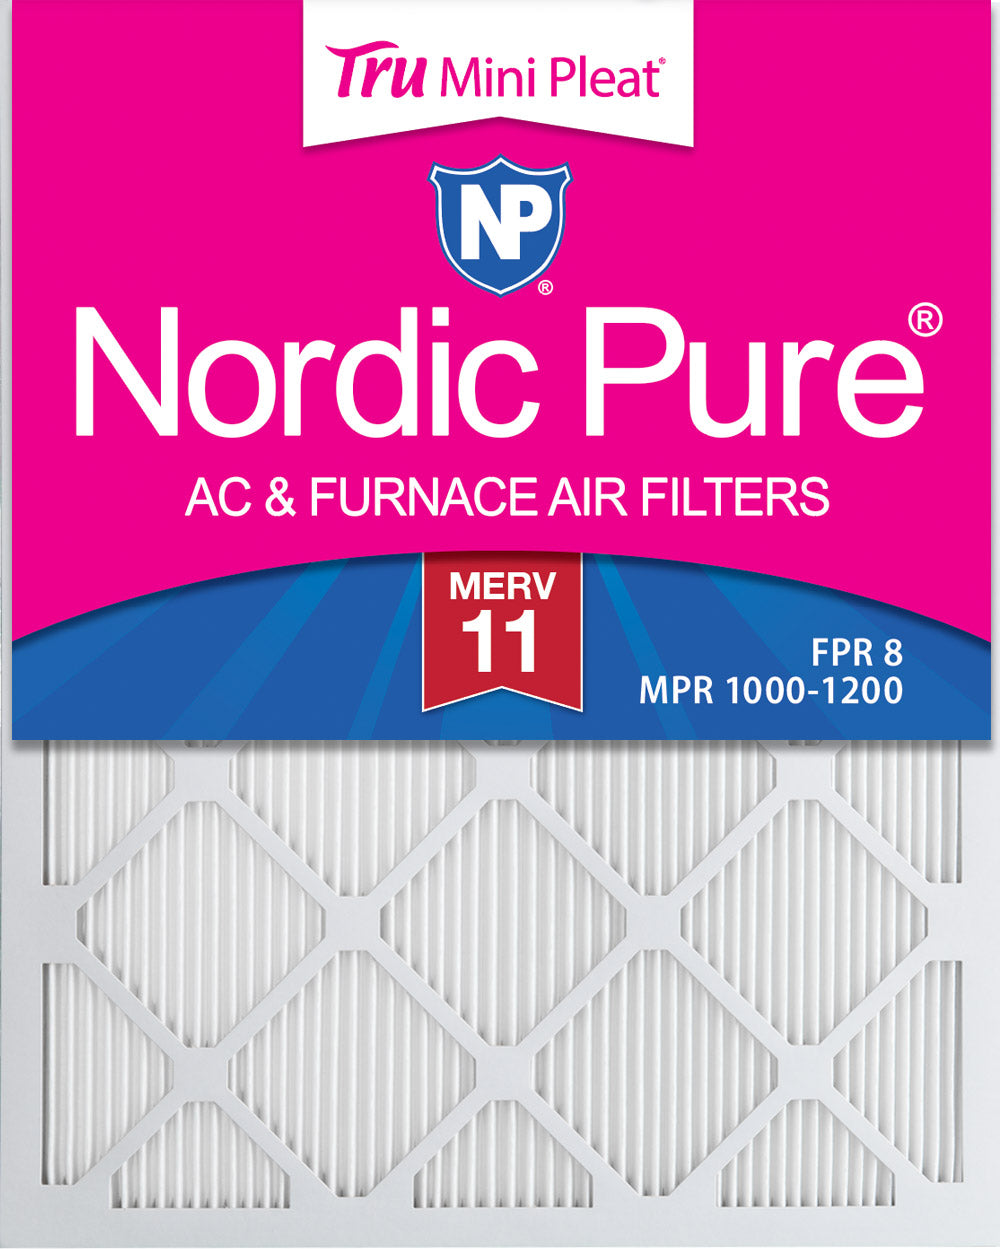 18x24x1 Tru Mini Pleat MERV 11 AC Furnace Air Filters 3 Pack